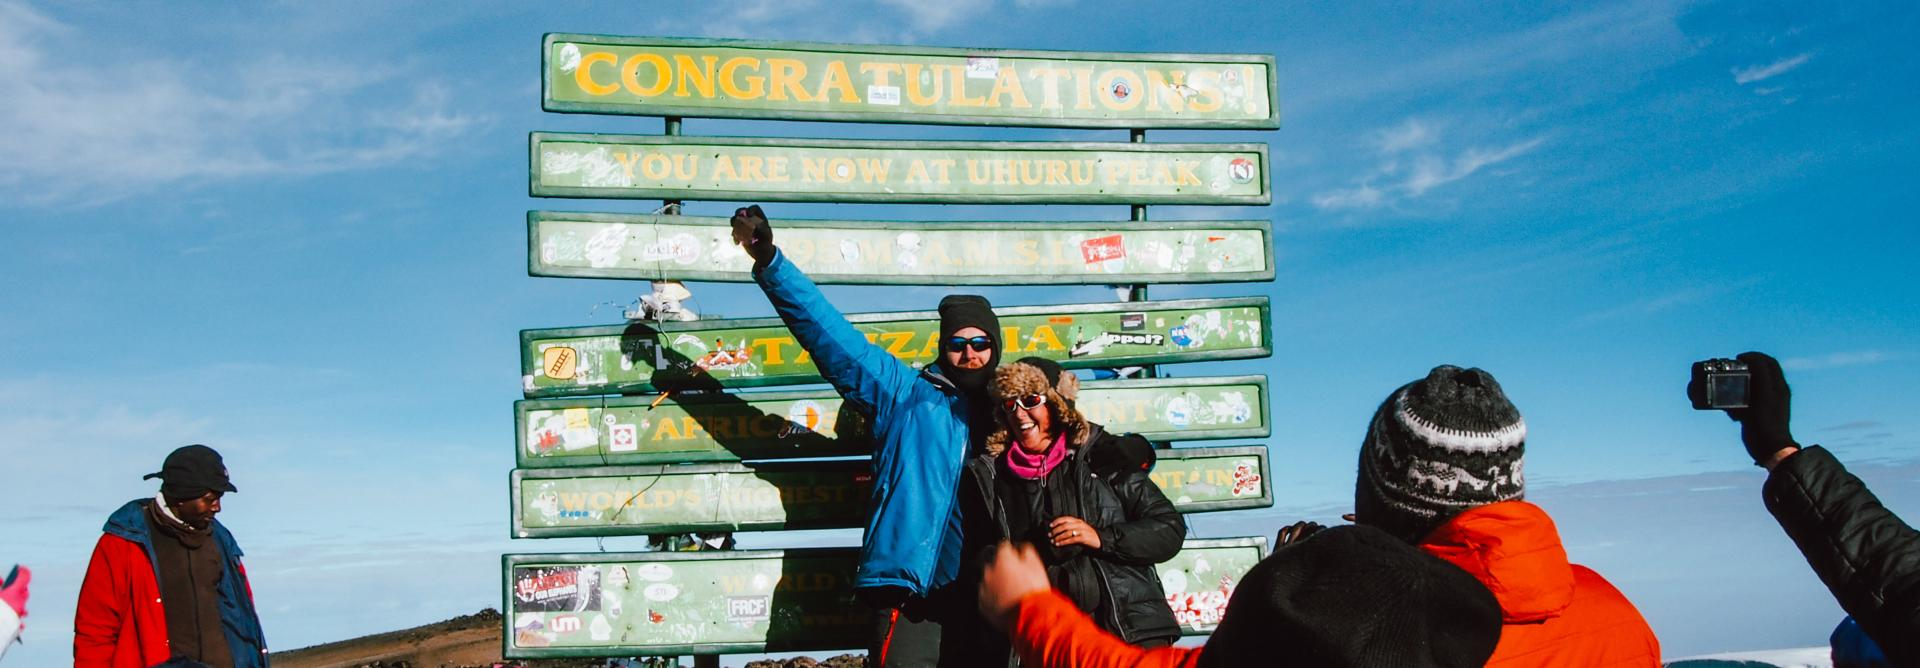 Celebrating a successful summit of Mt. Kilimanjaro with Charity Challenge